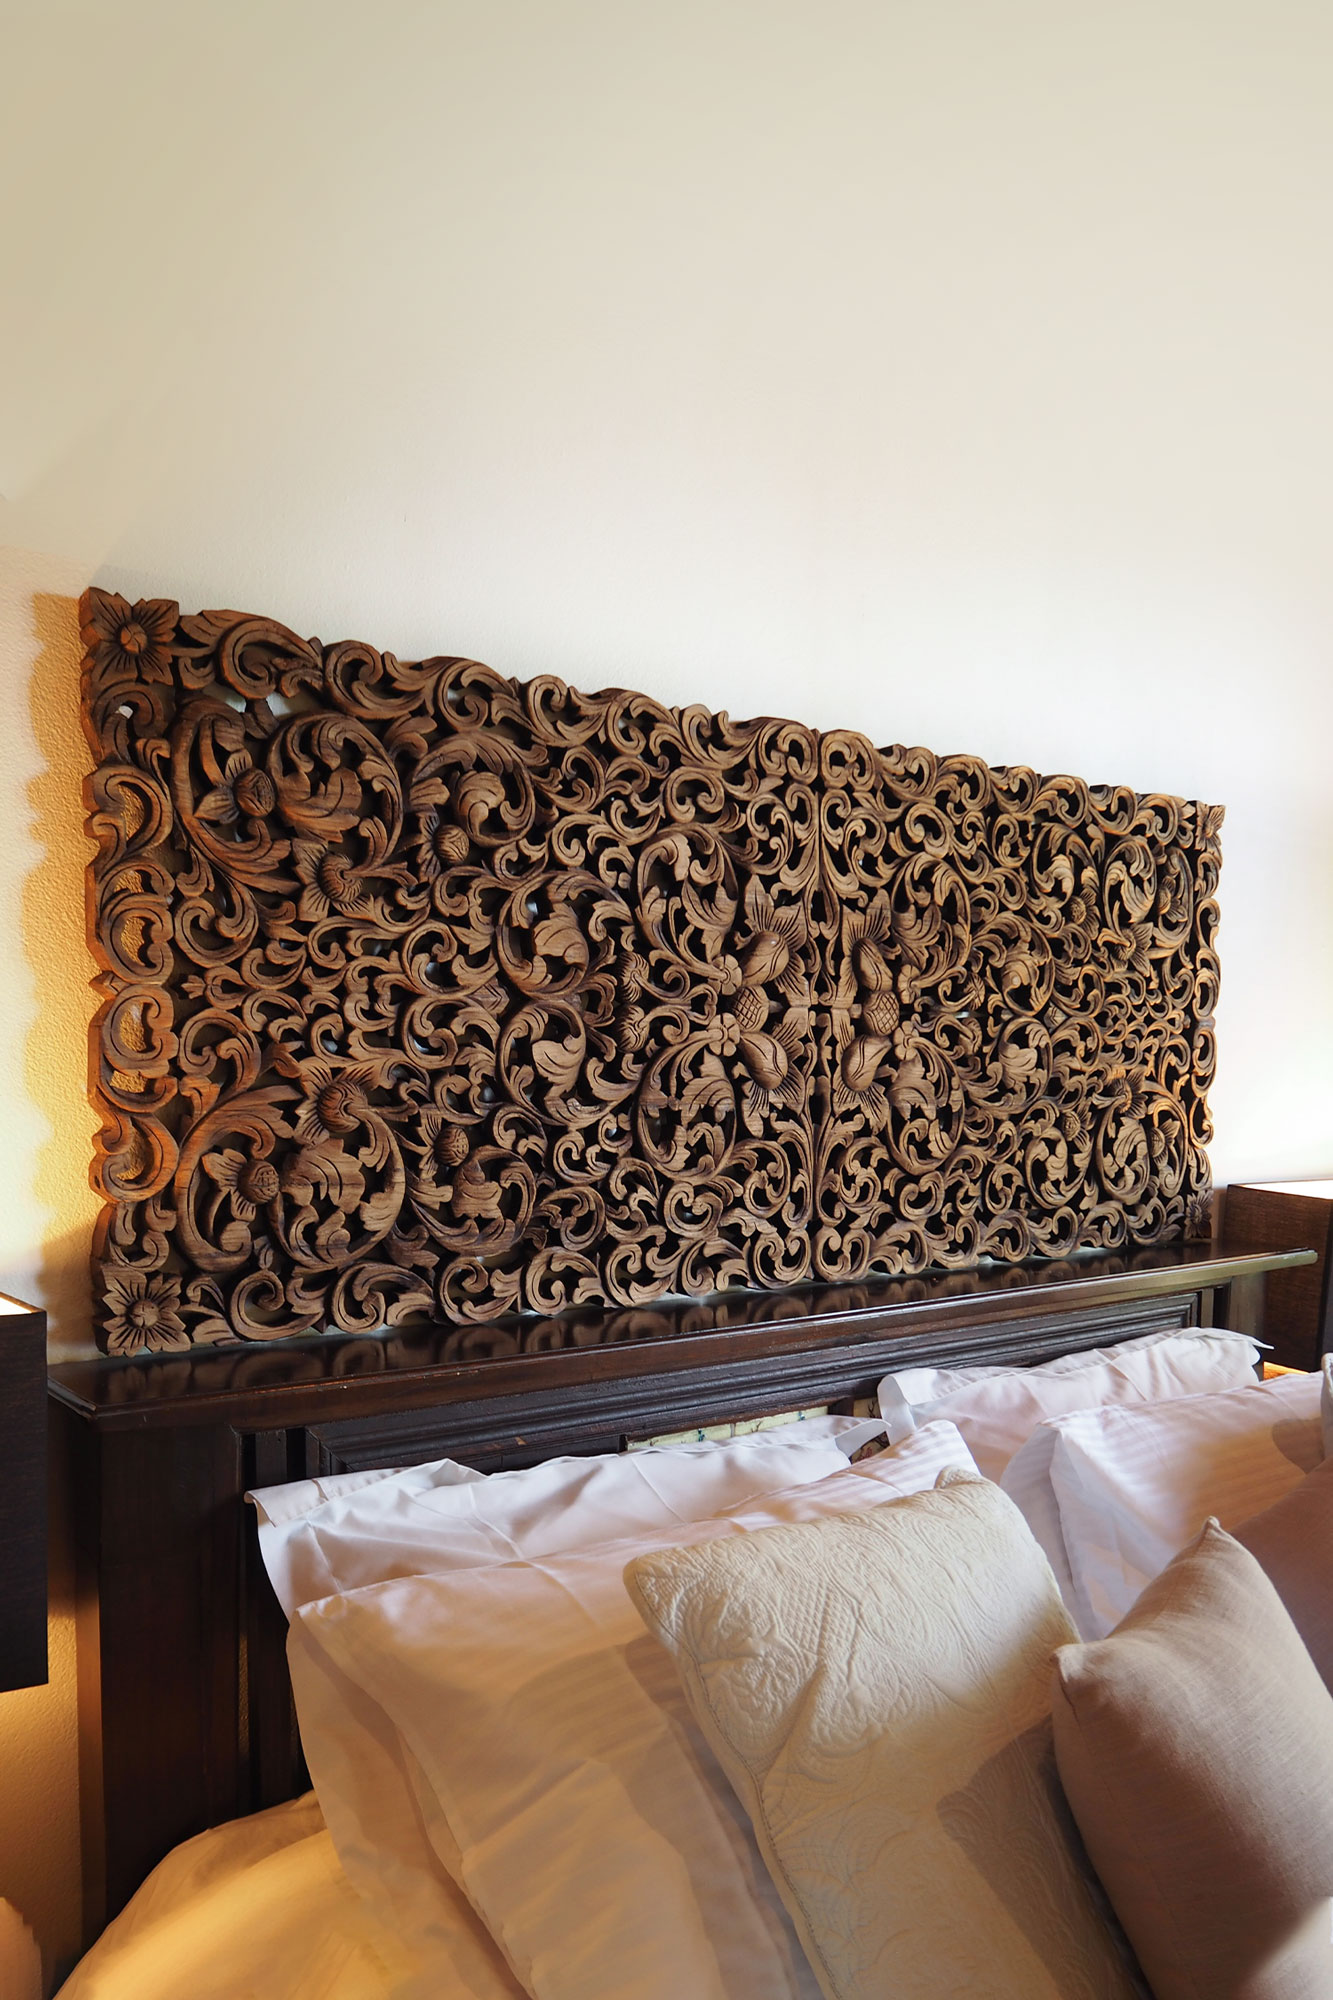 Buy Tropical Frond King Size Headboard Online